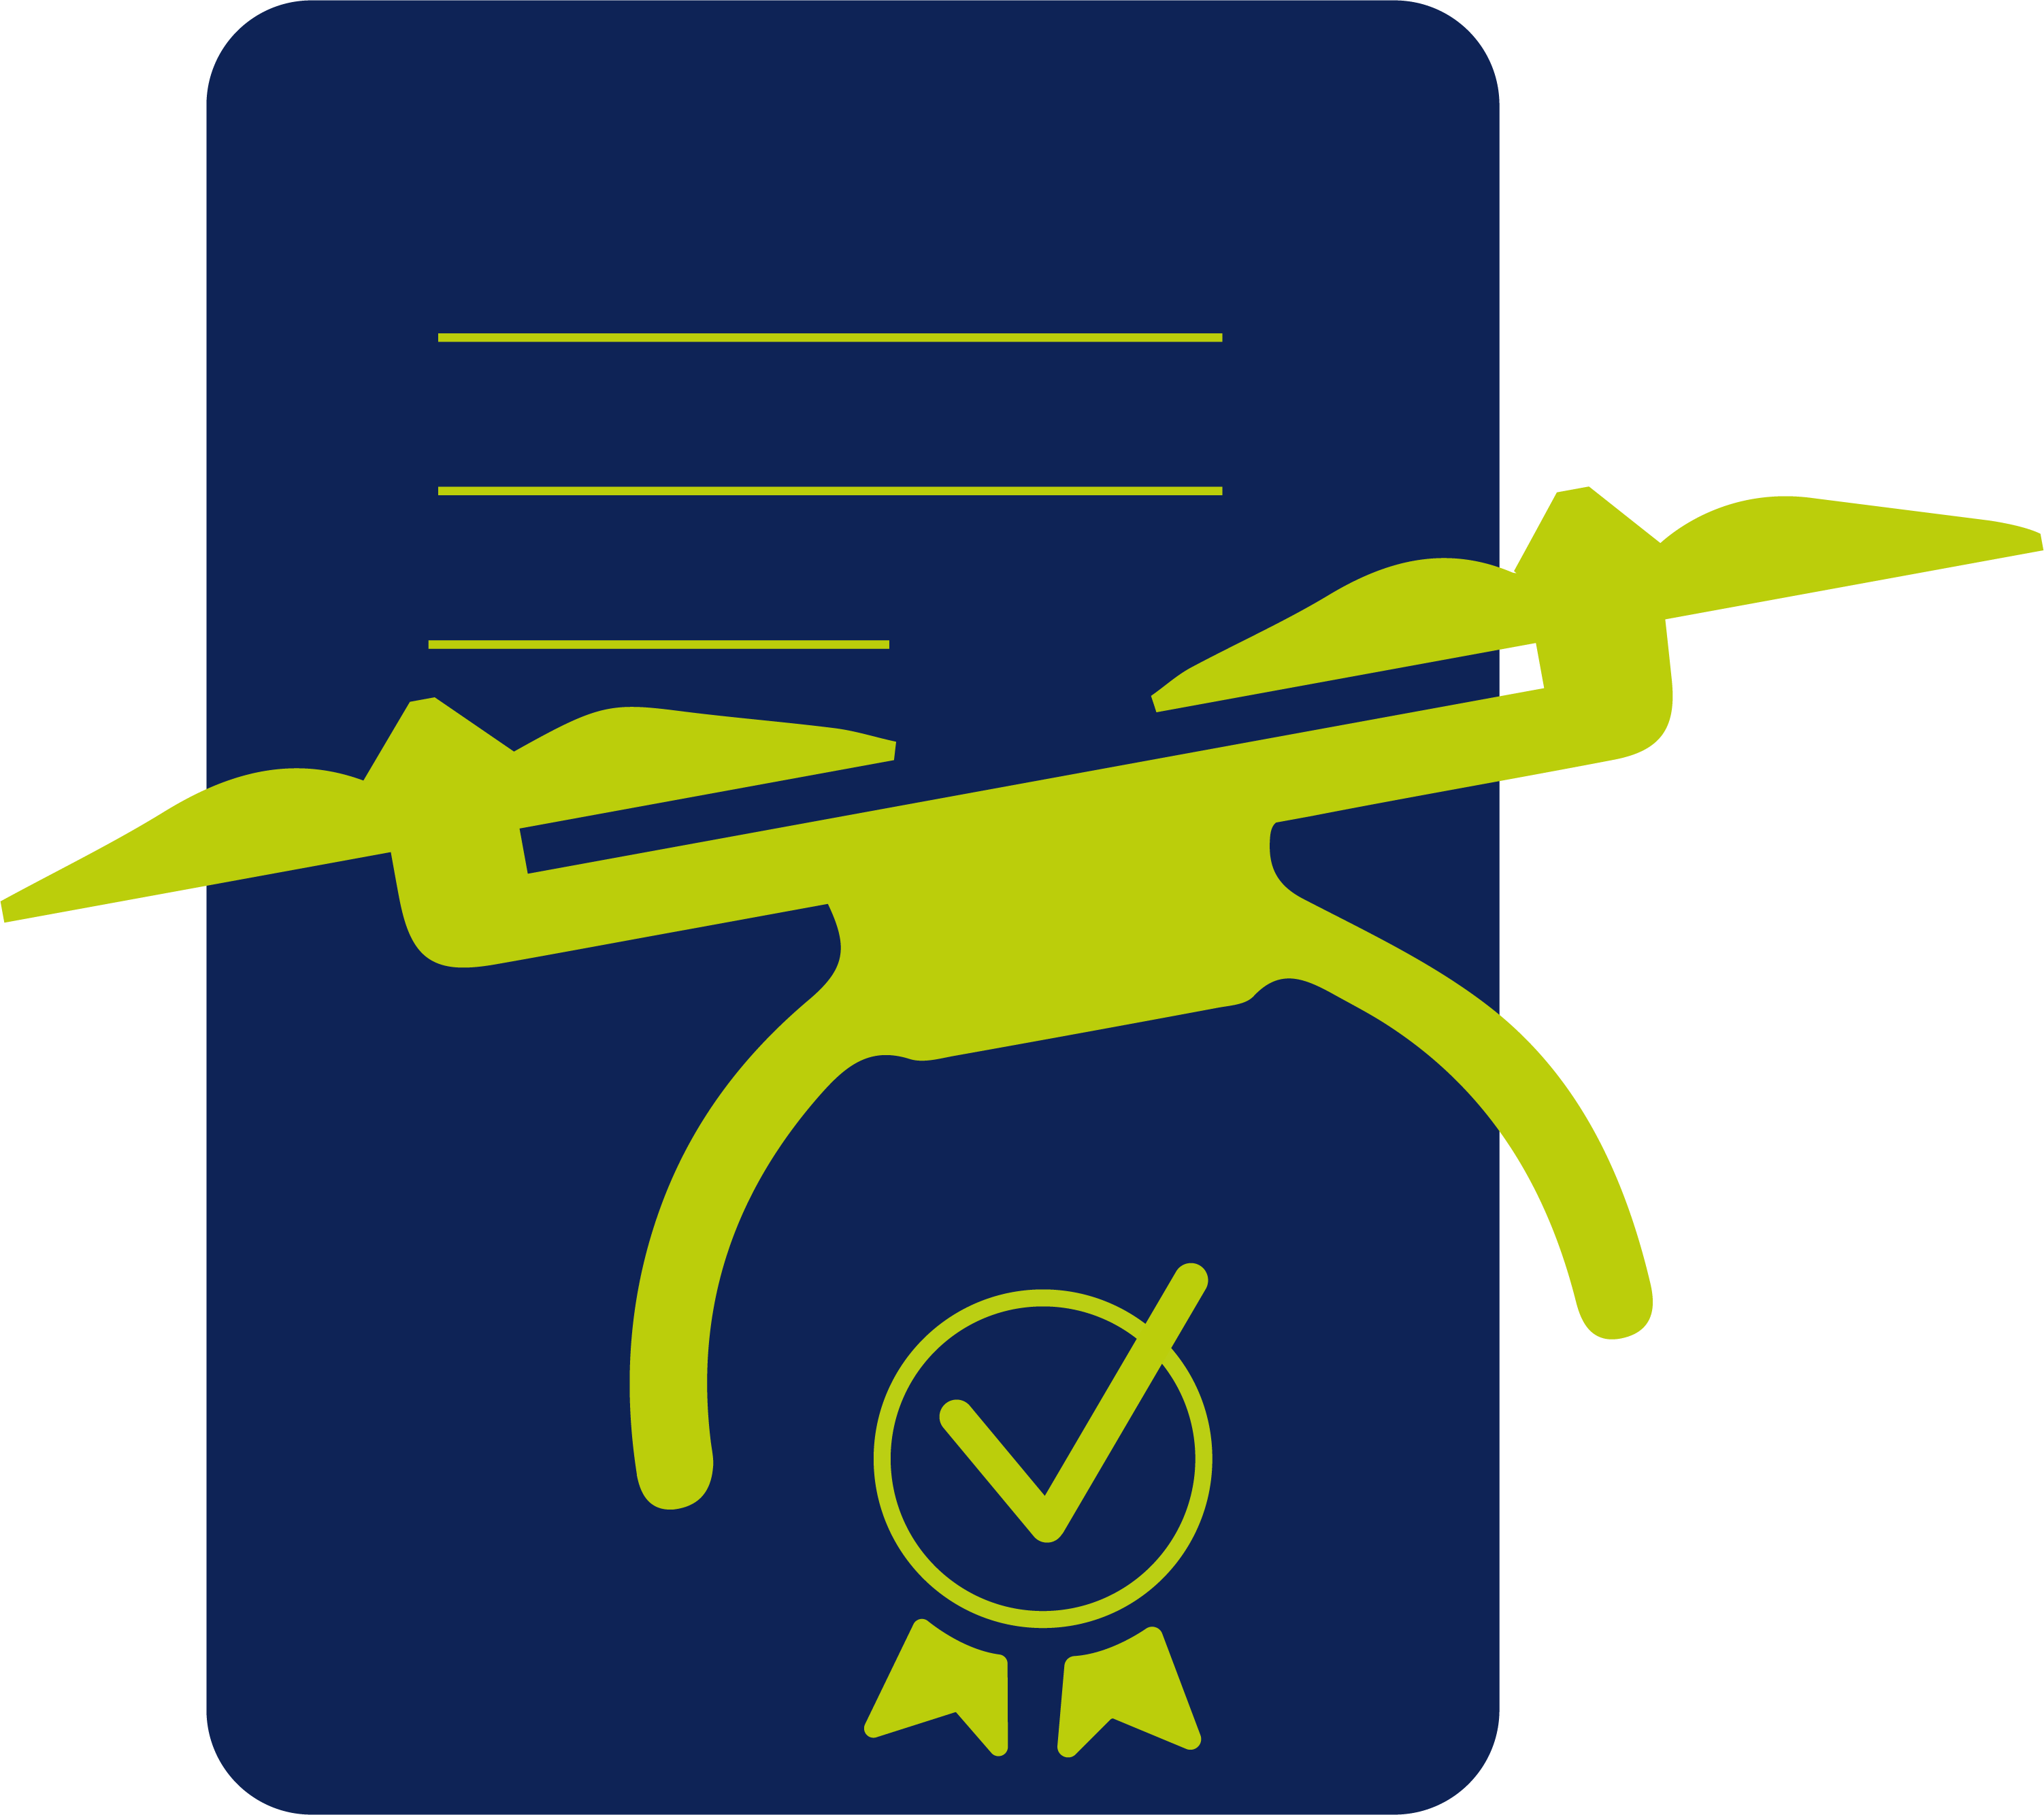 More Than 3000 Certified Commercial Drone Pilots In Clipart.